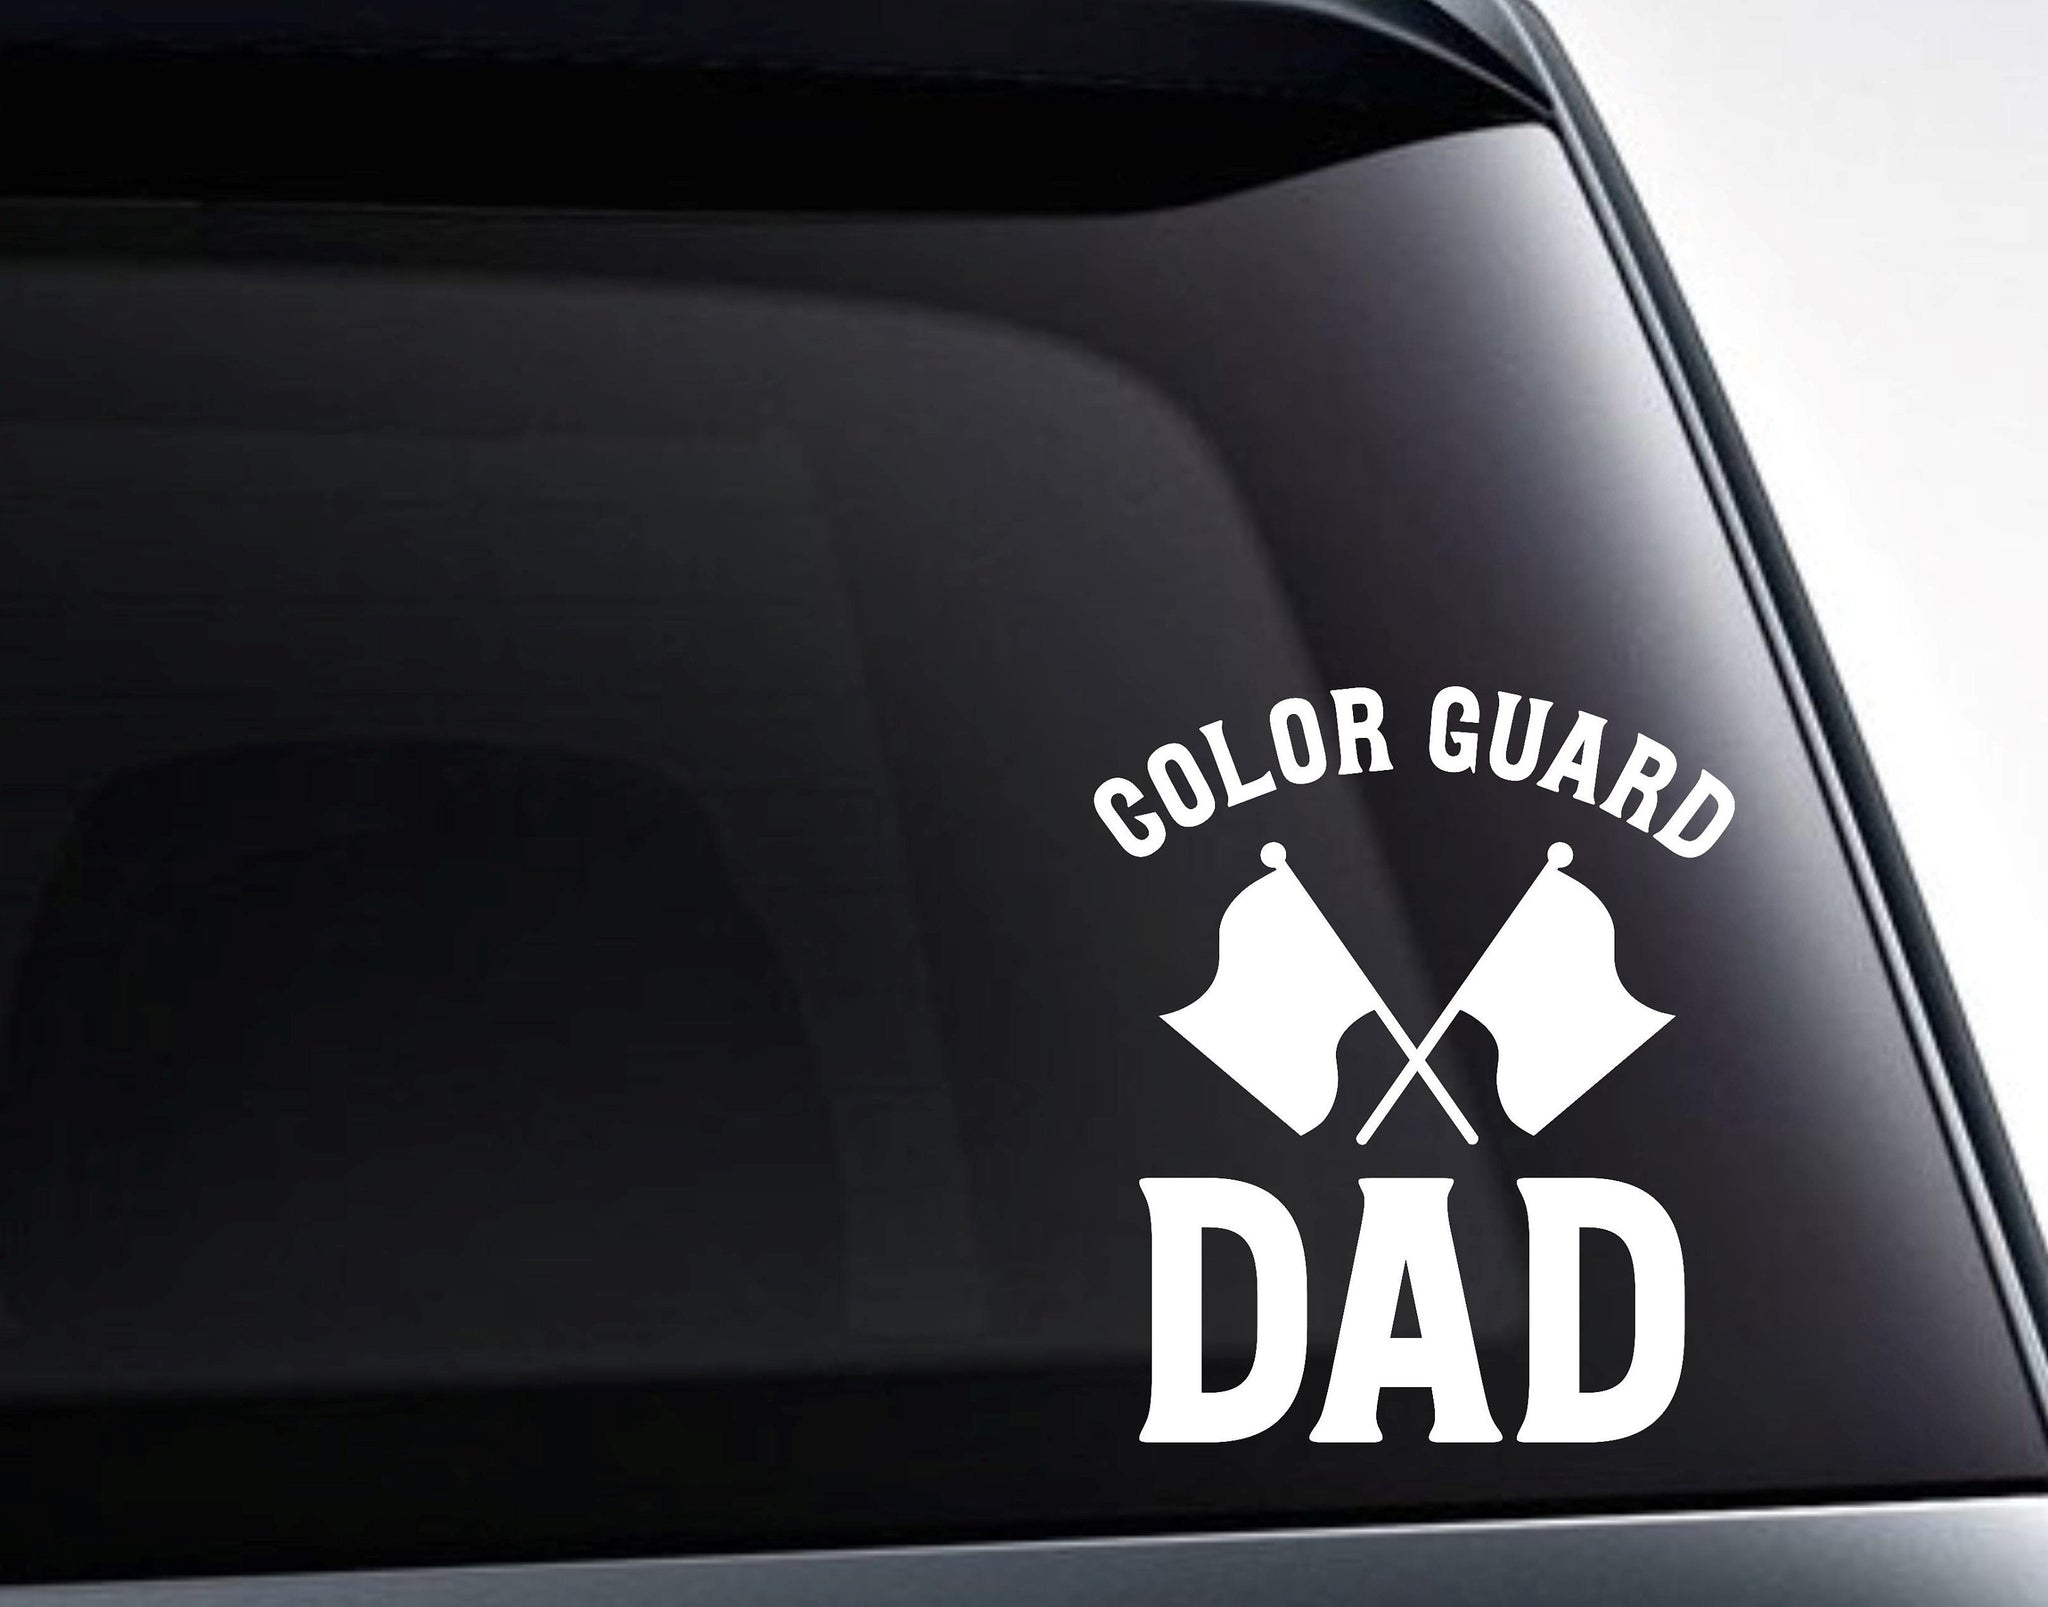 Color Guard Dad Marching Band Crossed Flags Vinyl Decal Sticker